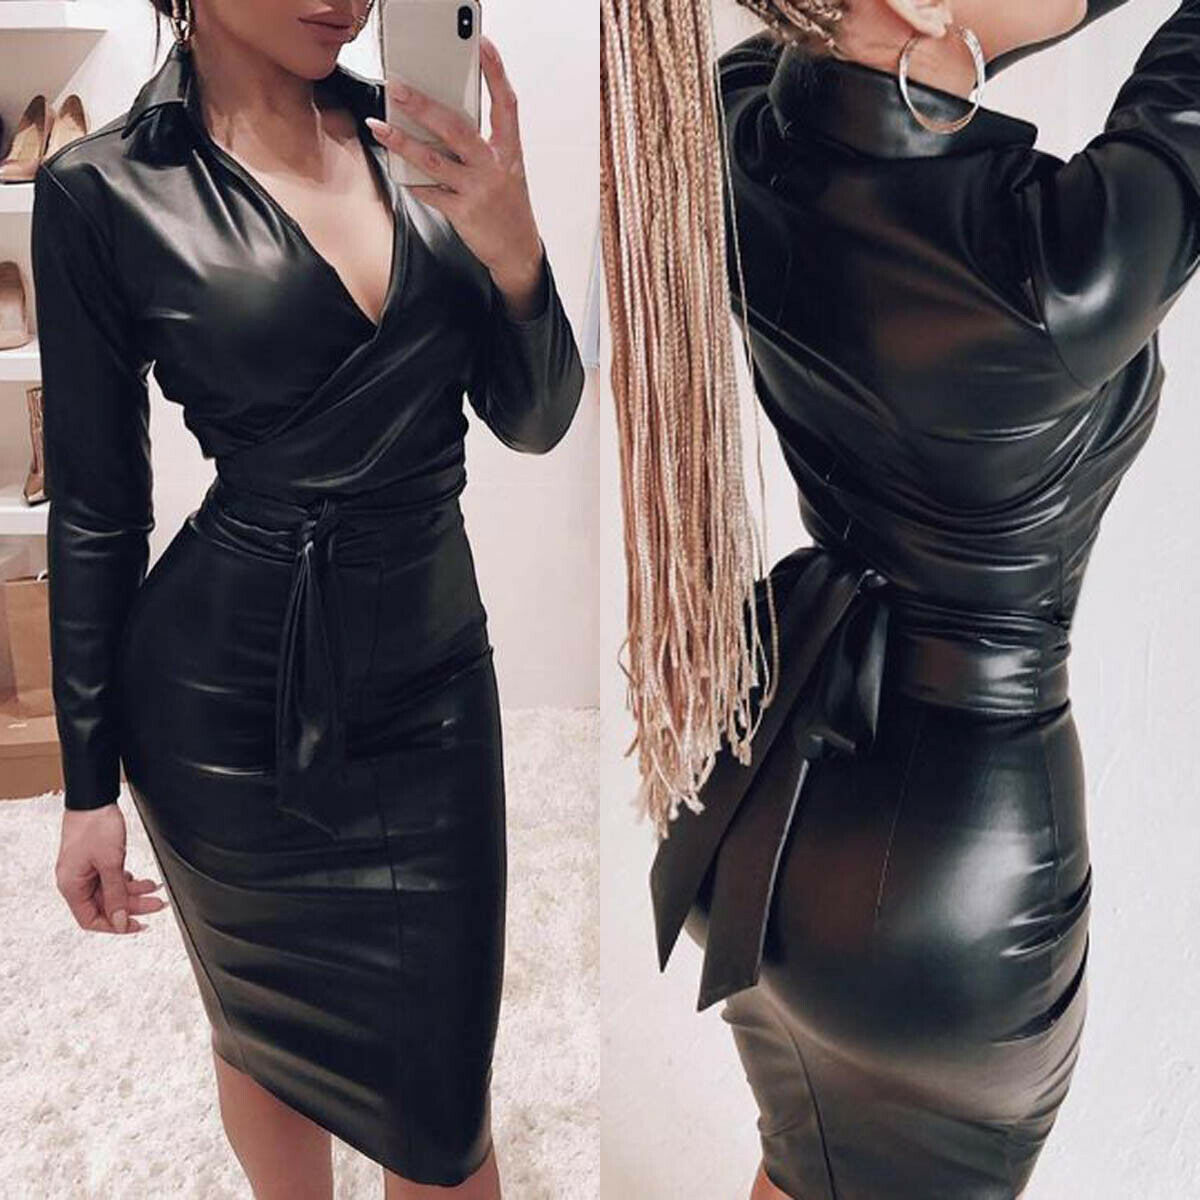 Women <font><b>Sexy</b></font> PU Leather <font><b>Bodycon</b></font> V-Neck <font><b>Dress</b></font> Deep Long Sleeve Empire Black Skinny <font><b>Bodycon</b></font> Midi <font><b>Dress</b></font> Night Club Sex Wear image